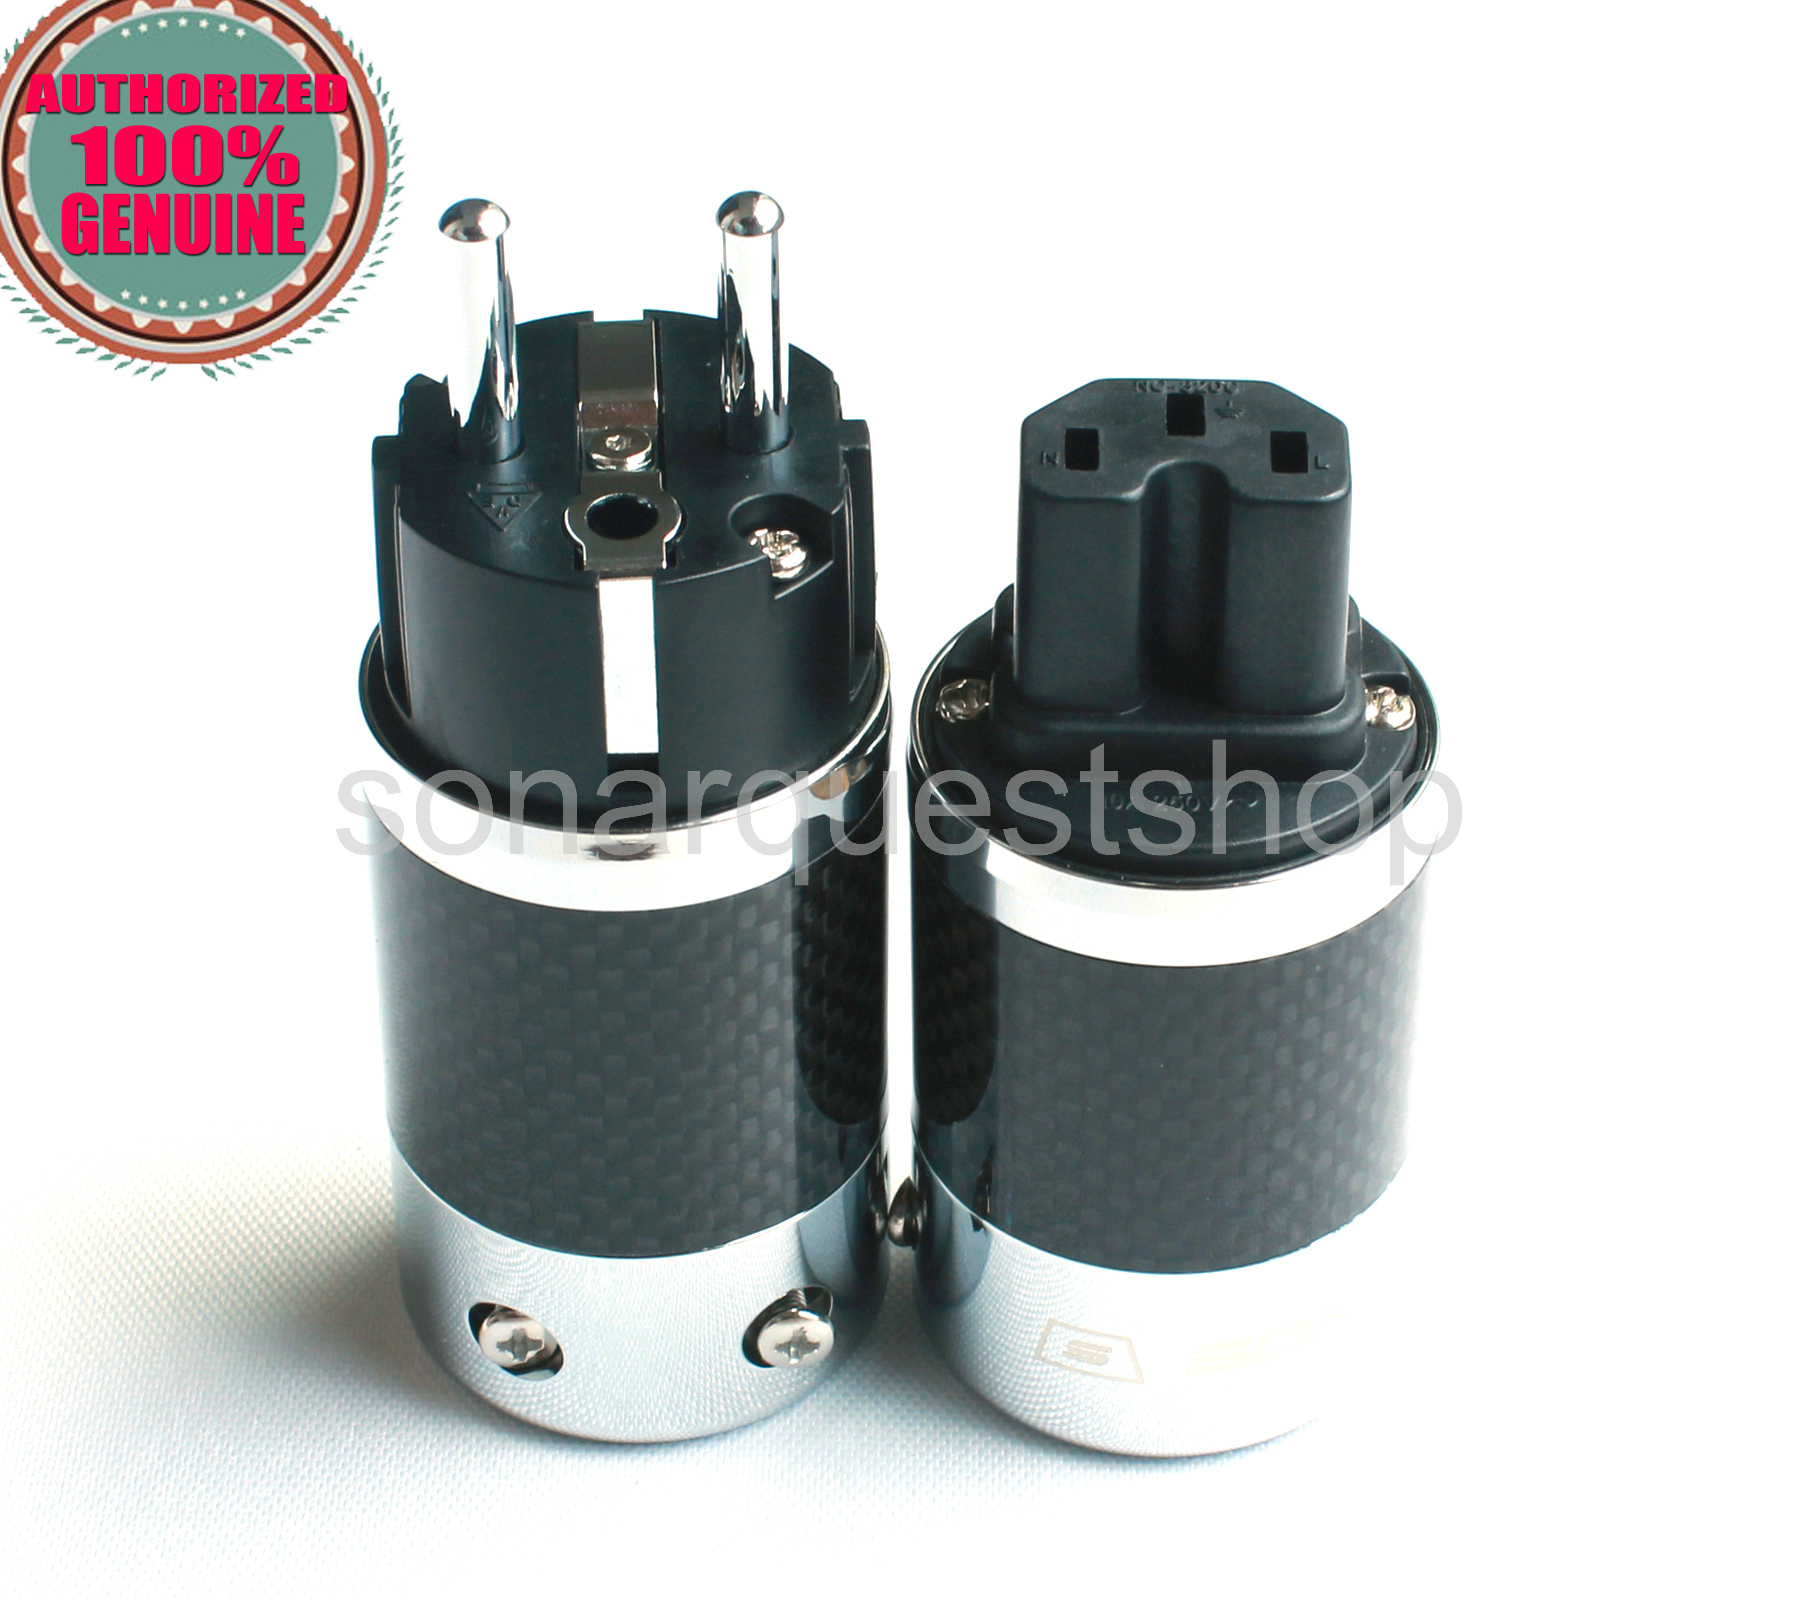 SONARQUEST SQ-E39(R)B + SQ-C39(R)B EU Rhodium Plated BK Carbon fiber Power Plug & IEC Connector